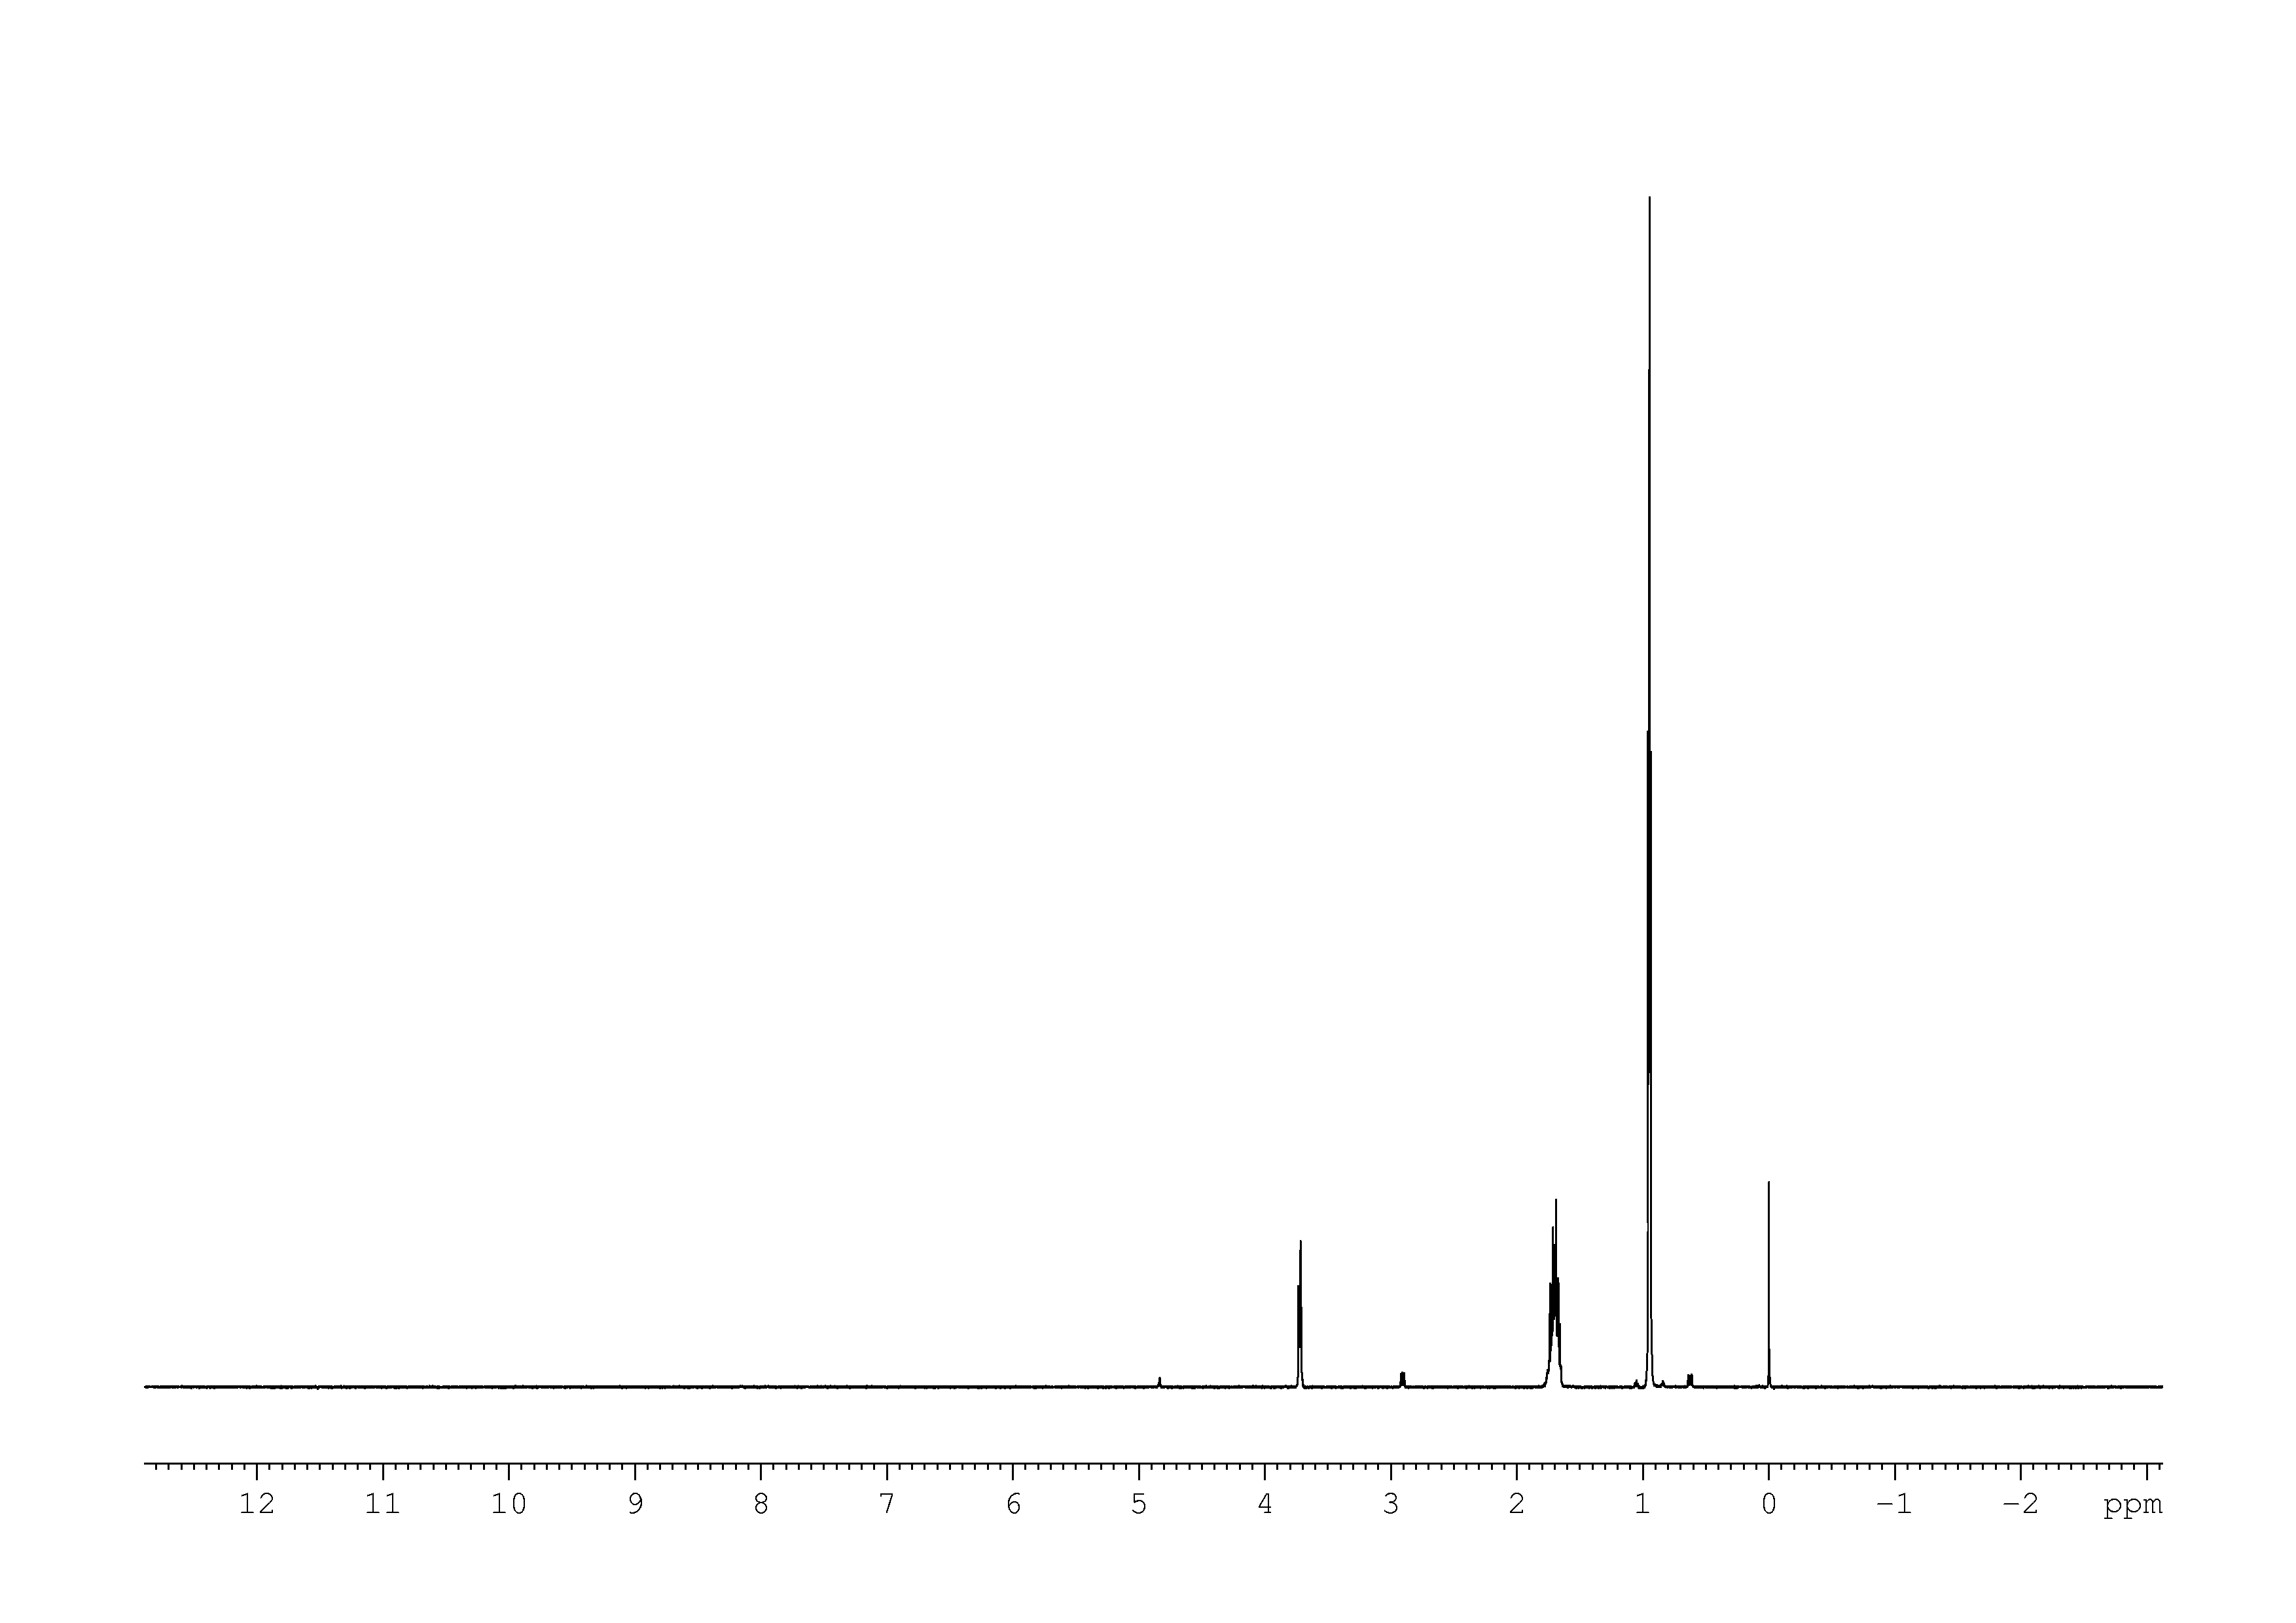 1D 1H, 7.4 spectrum for L-Leucine